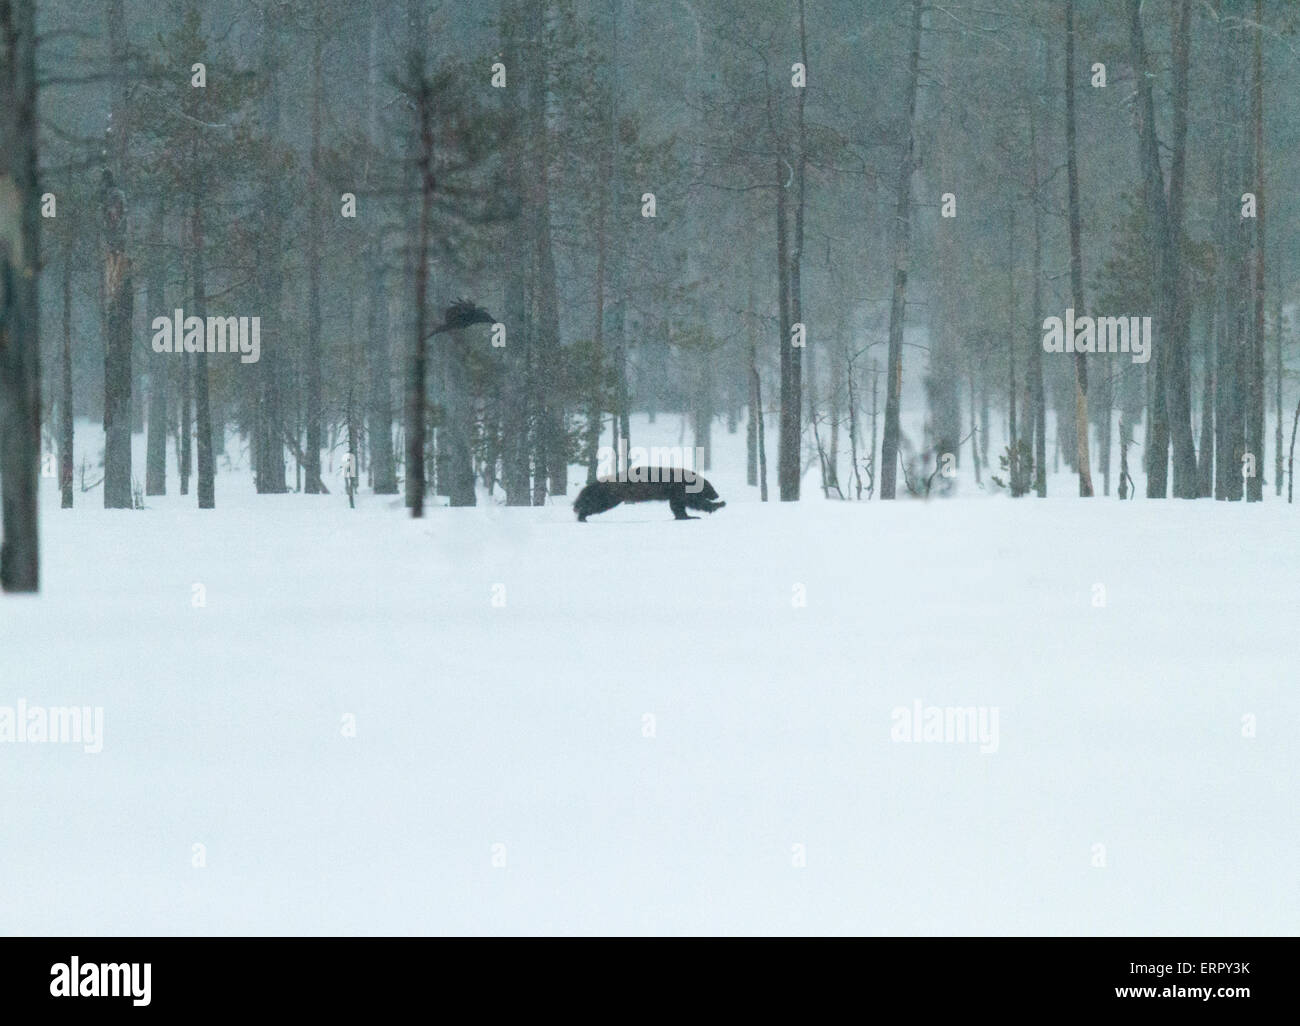 Wolverine, Gulo gulo, in winter landscape with snow falling in Kuhmo, Finland - Stock Image